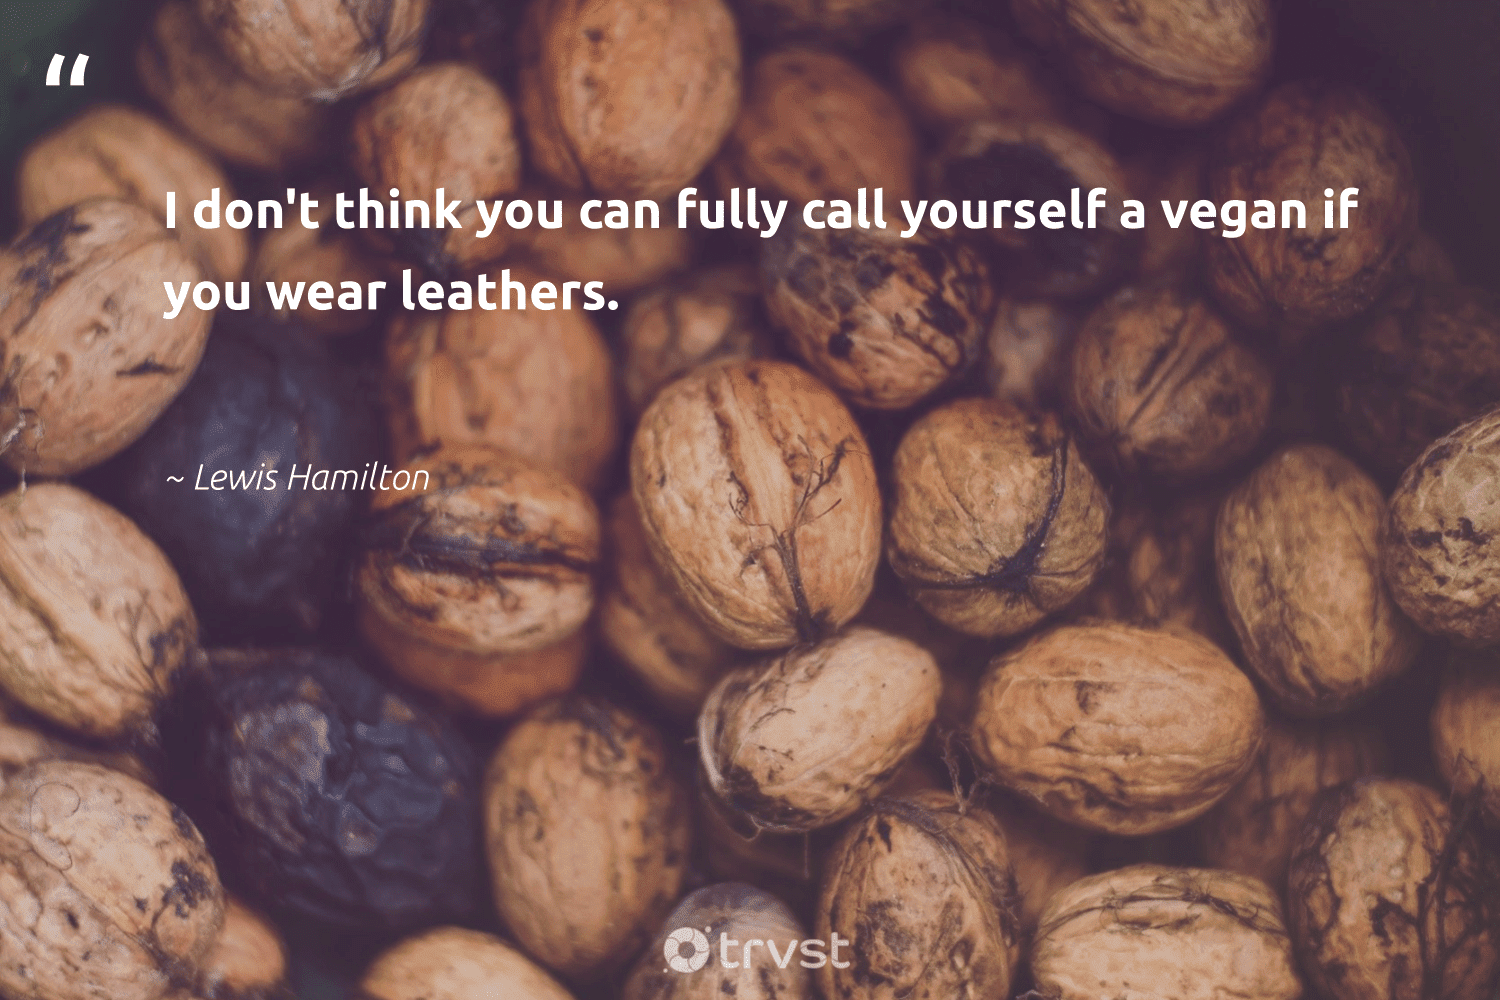 """""""I don't think you can fully call yourself a vegan if you wear leathers.""""  - Lewis Hamilton #trvst #quotes #vegan #whatveganseat #green #sustainability #dogood #vegetarian #sustainable #bethechange #thinkgreen #veganfoodshare"""